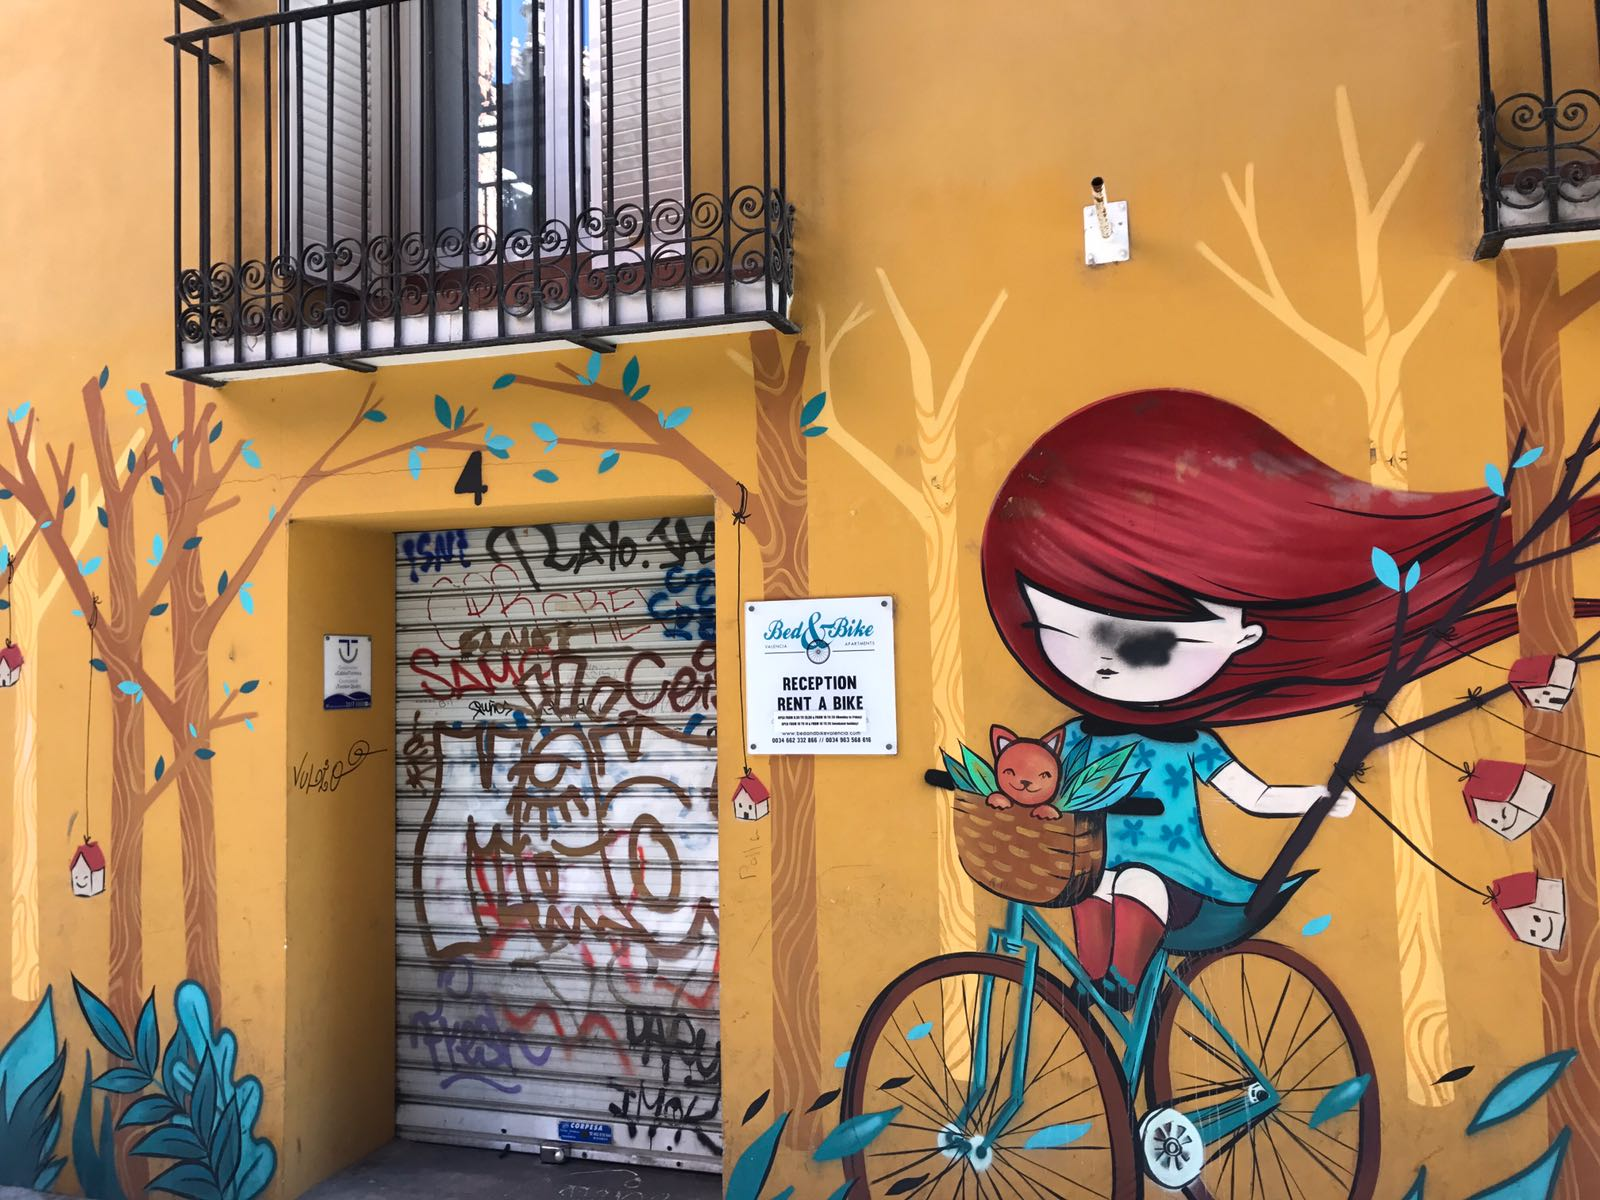 Mural of manga girl on bike cycling through trees with tiny houses tied to them